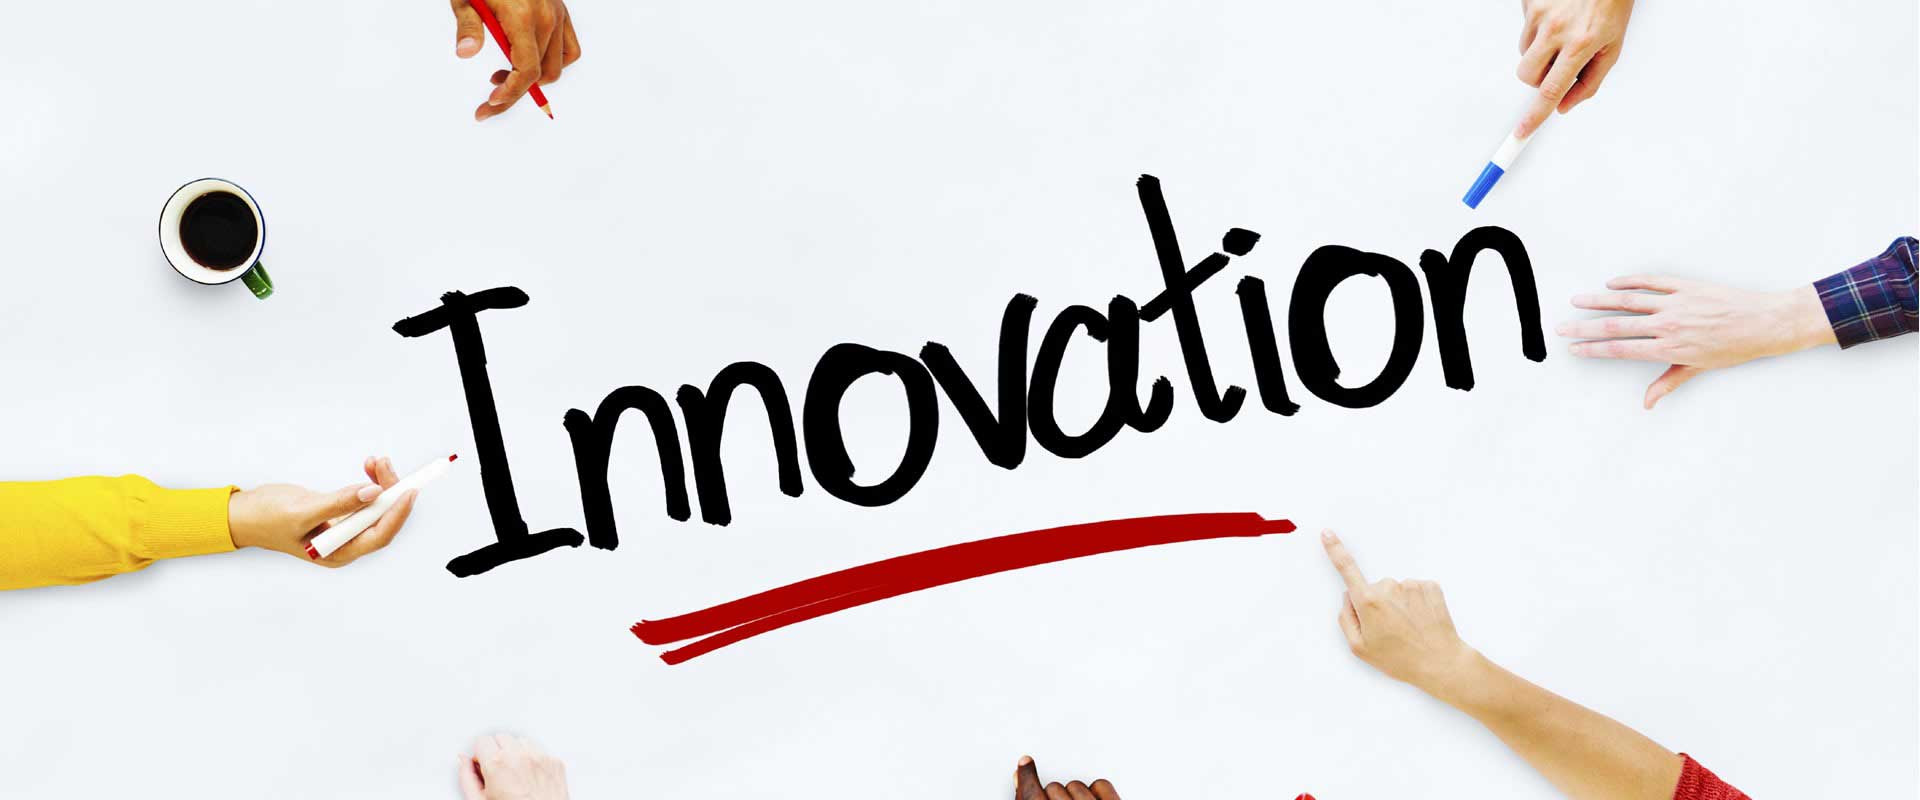 Why we cannot afford to relegate innovation to the backseat